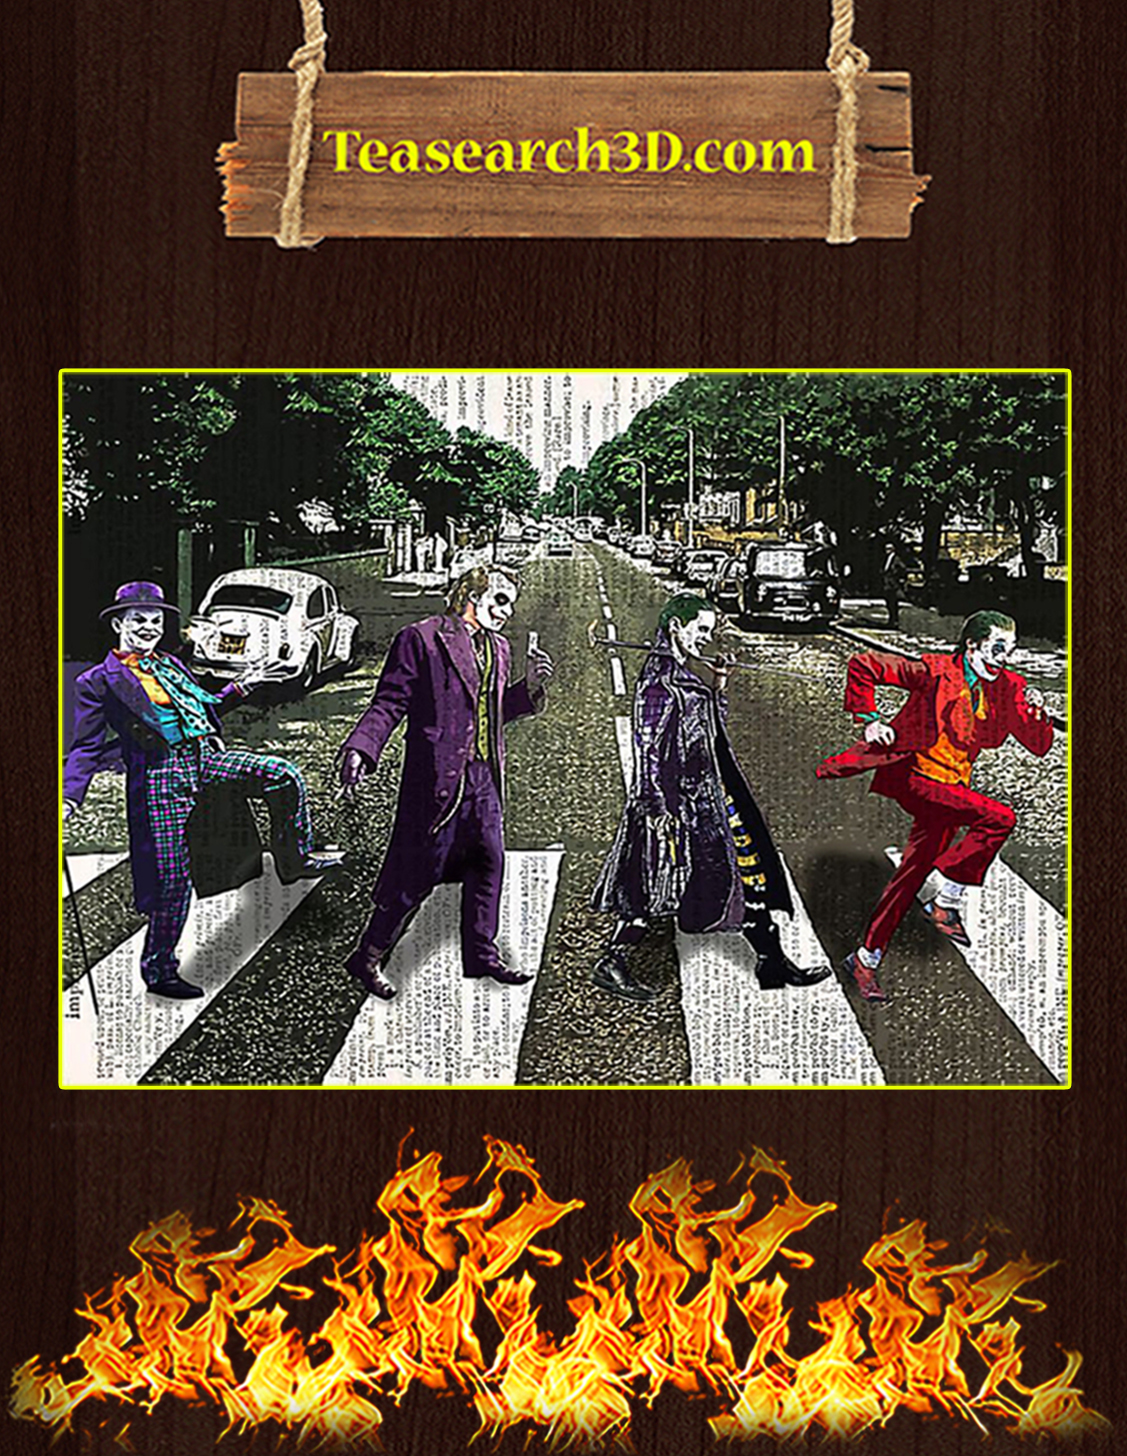 Jocker abbey road parody poster A3